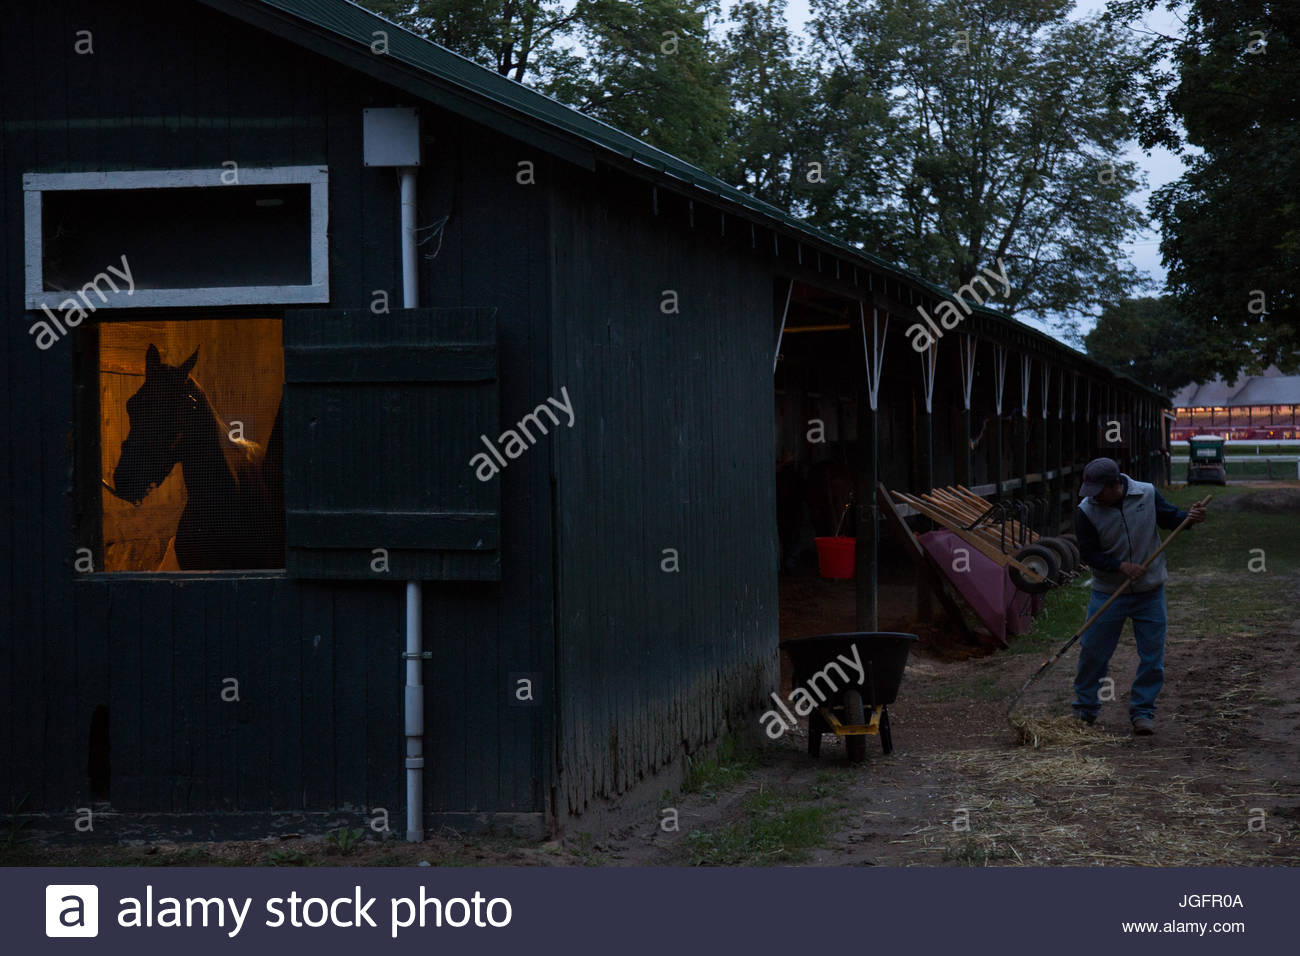 A groom mucks out the stables in the early morning. - Stock Image